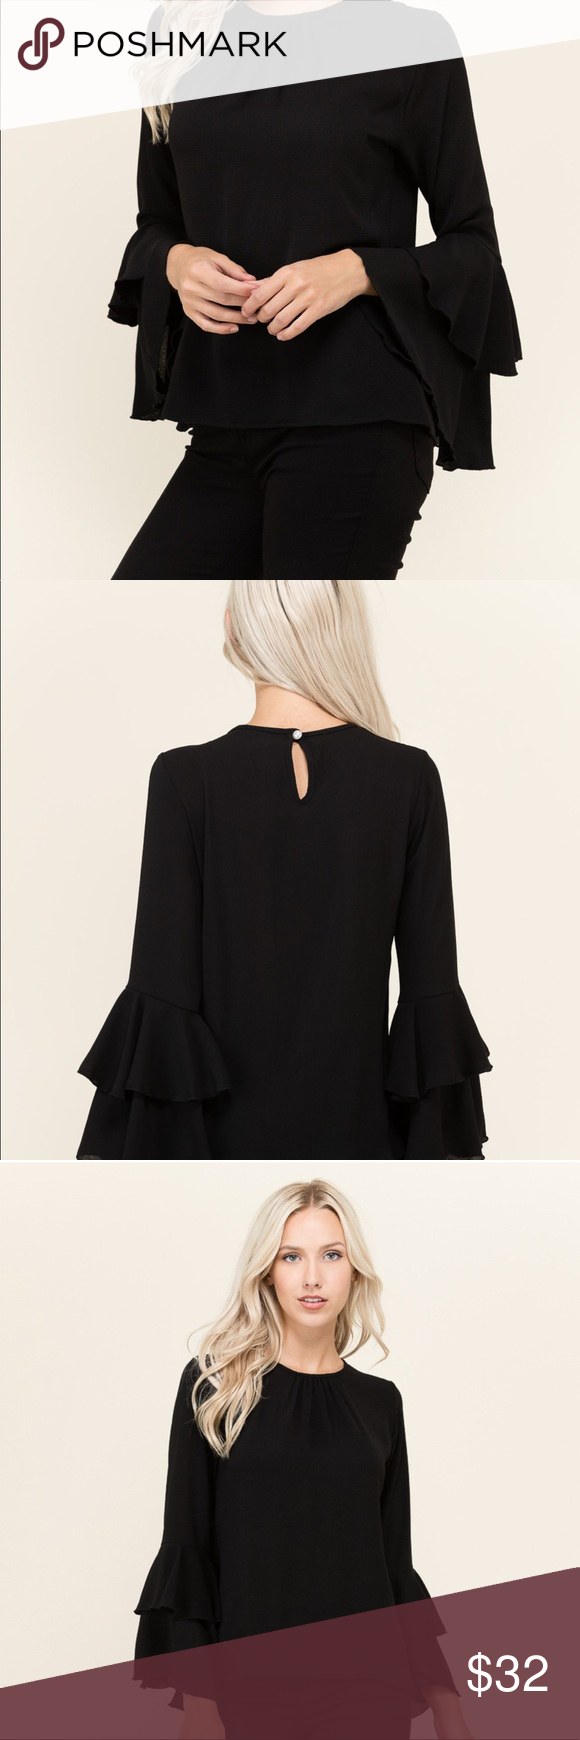 New solid bell sl bk keyhole button top boutique in my posh